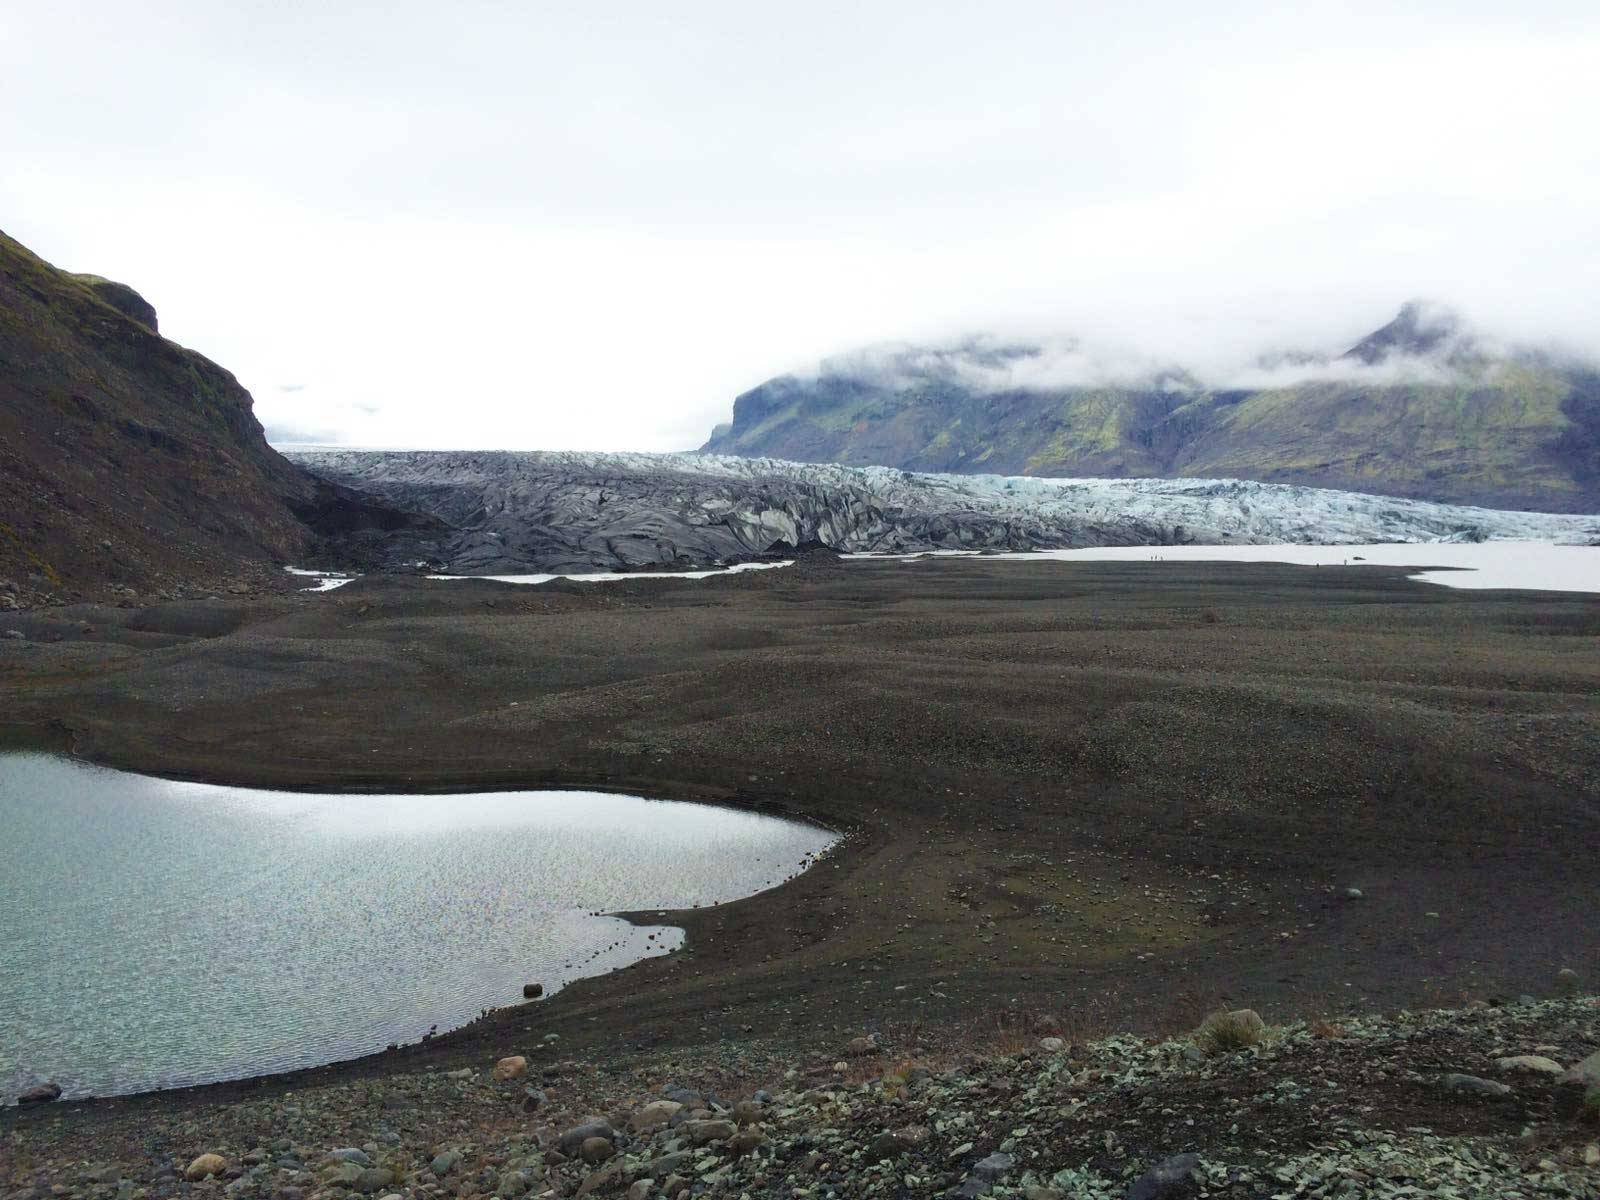 Photo 1: Skaftafell National Park - Islande